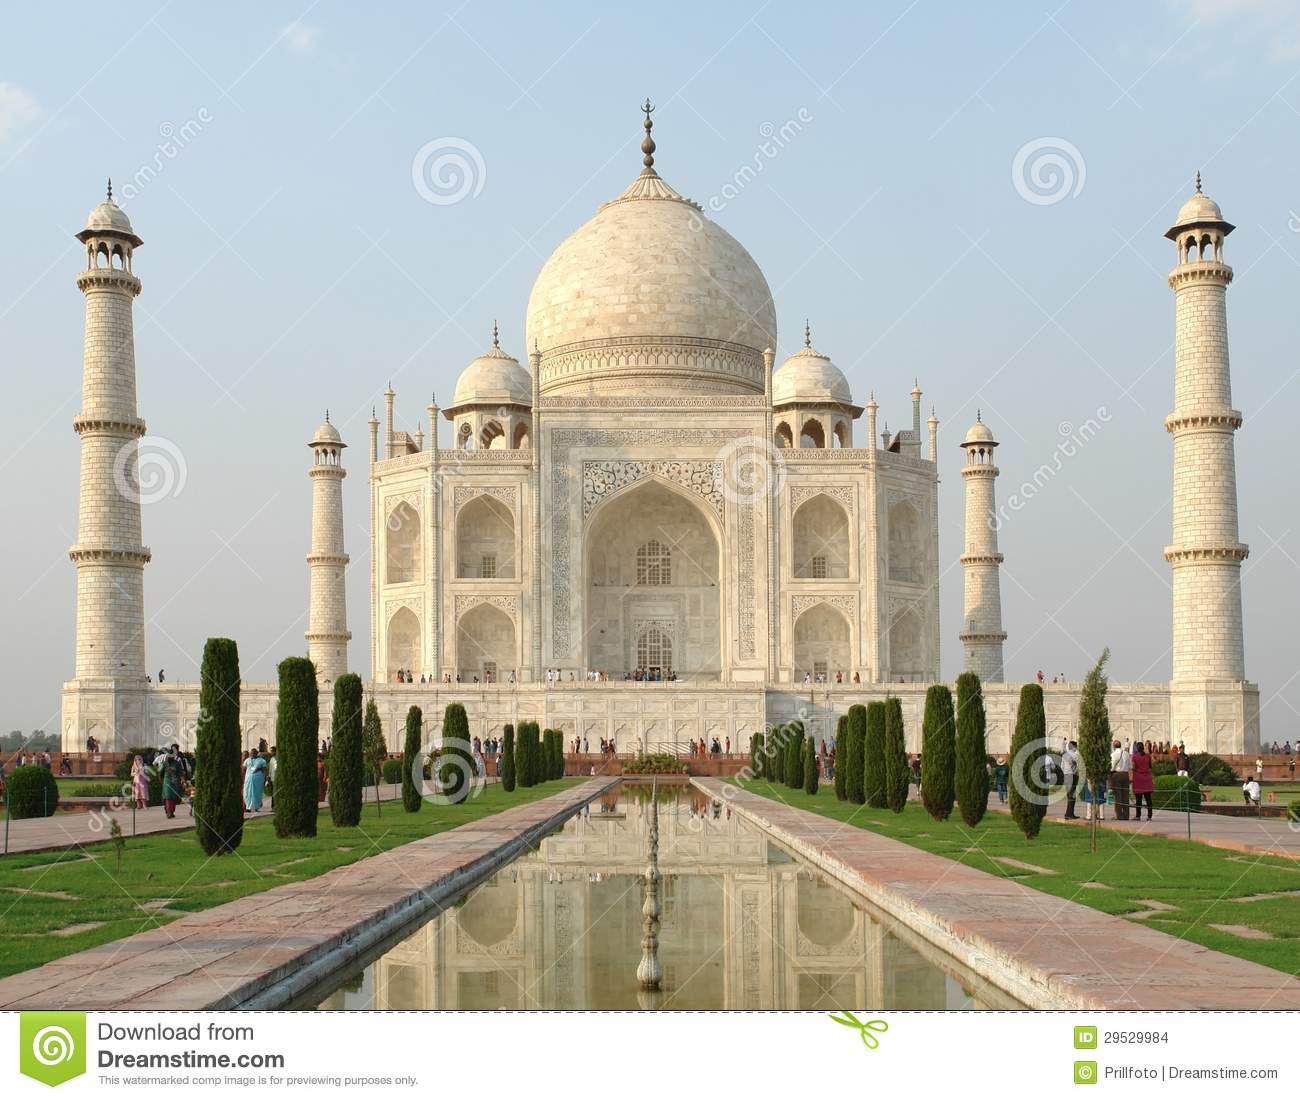 Mausoleum named Taj Mahal in Agra, India at evening time.